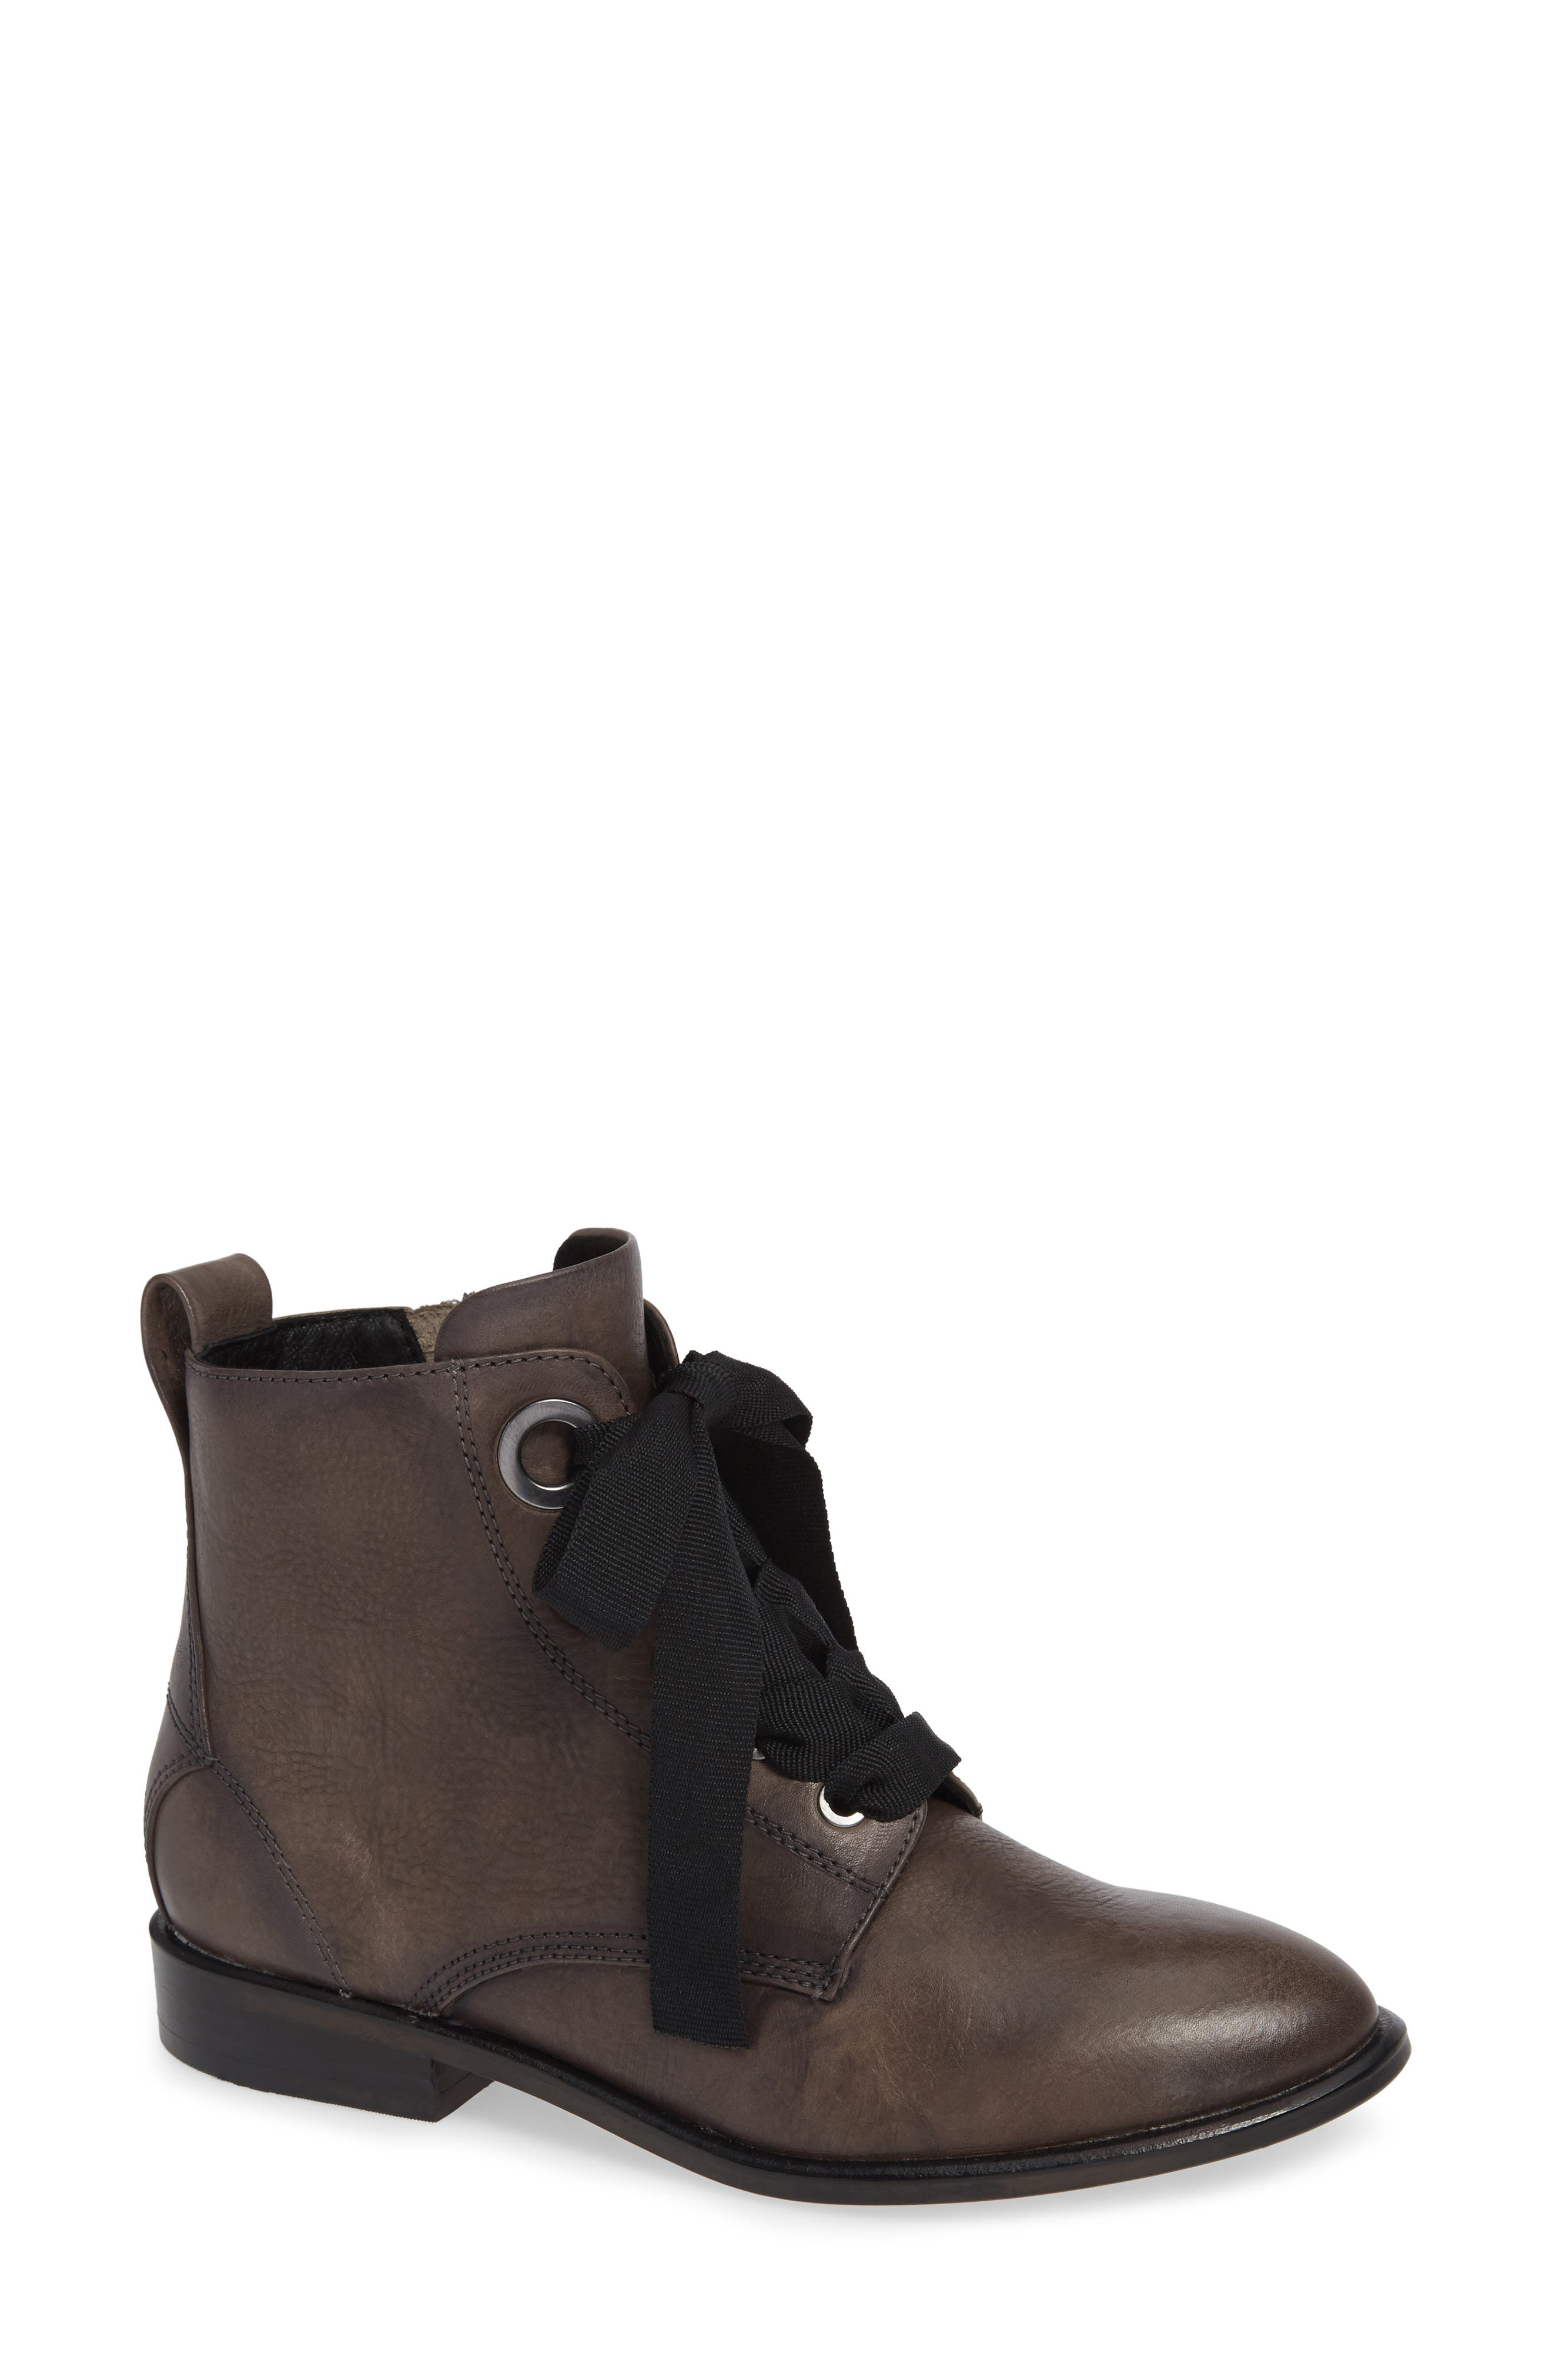 Tocina Bootie,                             Main thumbnail 1, color,                             PAVEMENT LEATHER